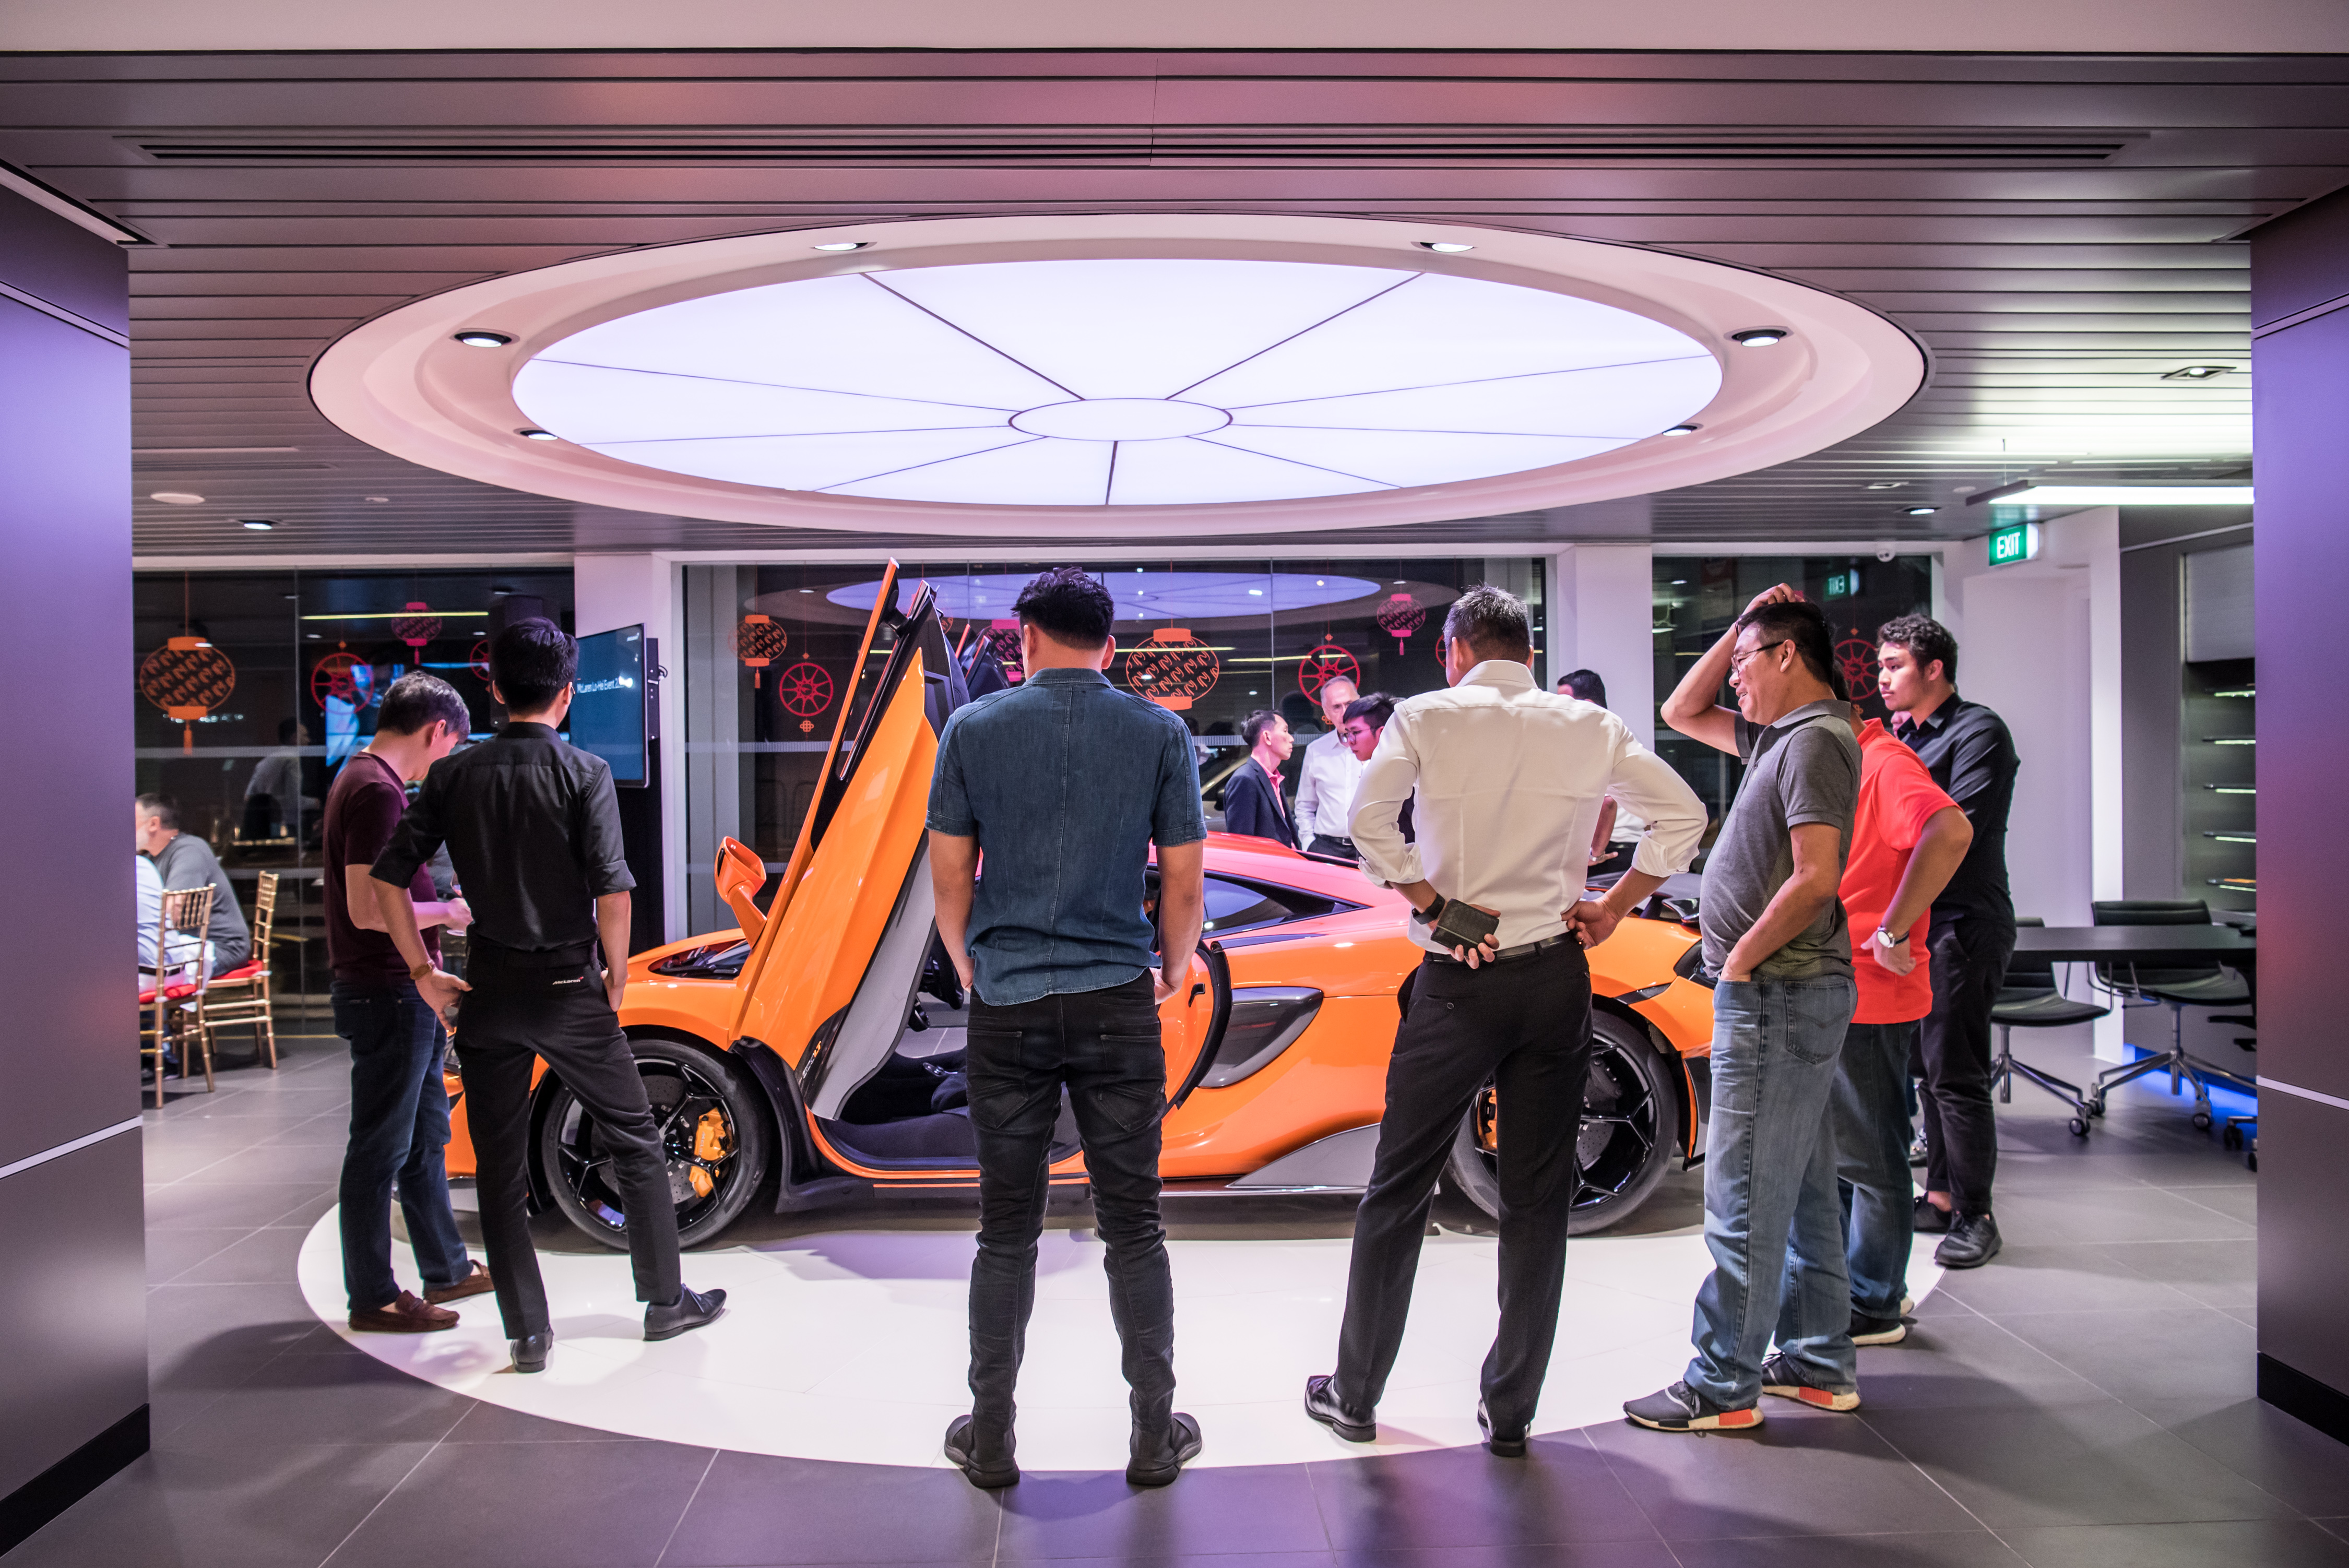 The guests were able to view the new 600LT up close